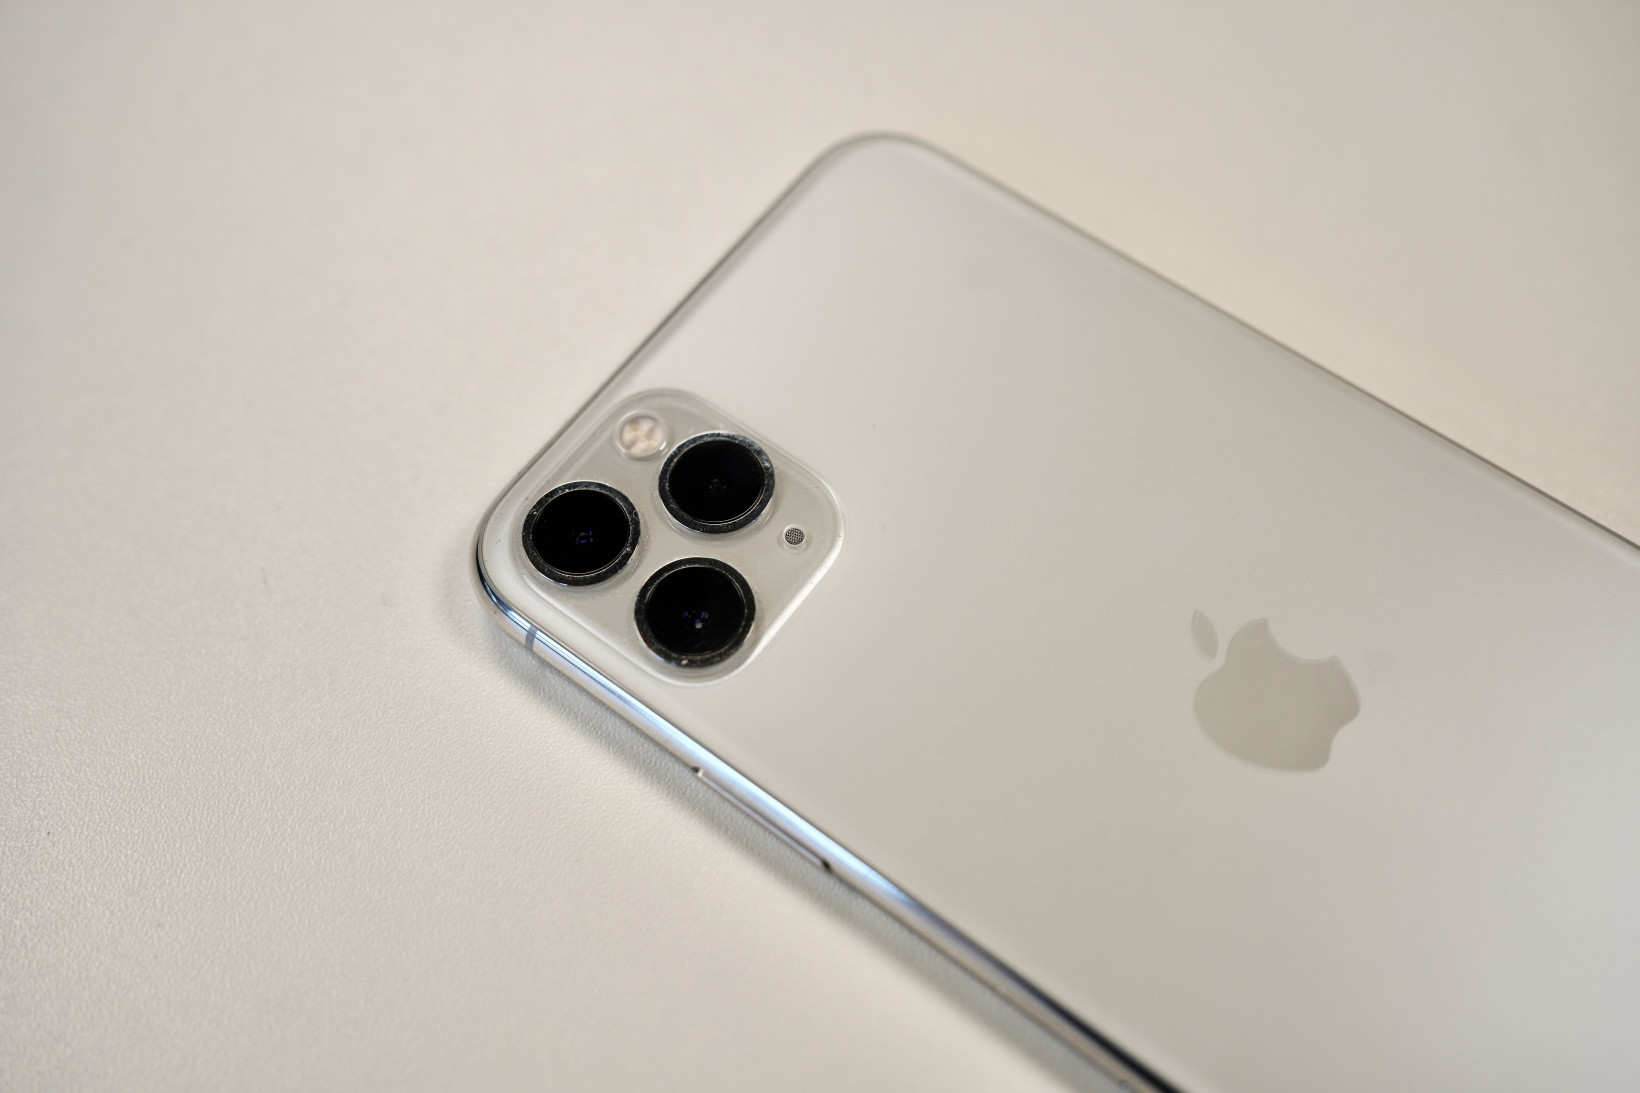 Apple's flagship 2021 iPhone will have no ports at all, say Ming-Chi Kuo